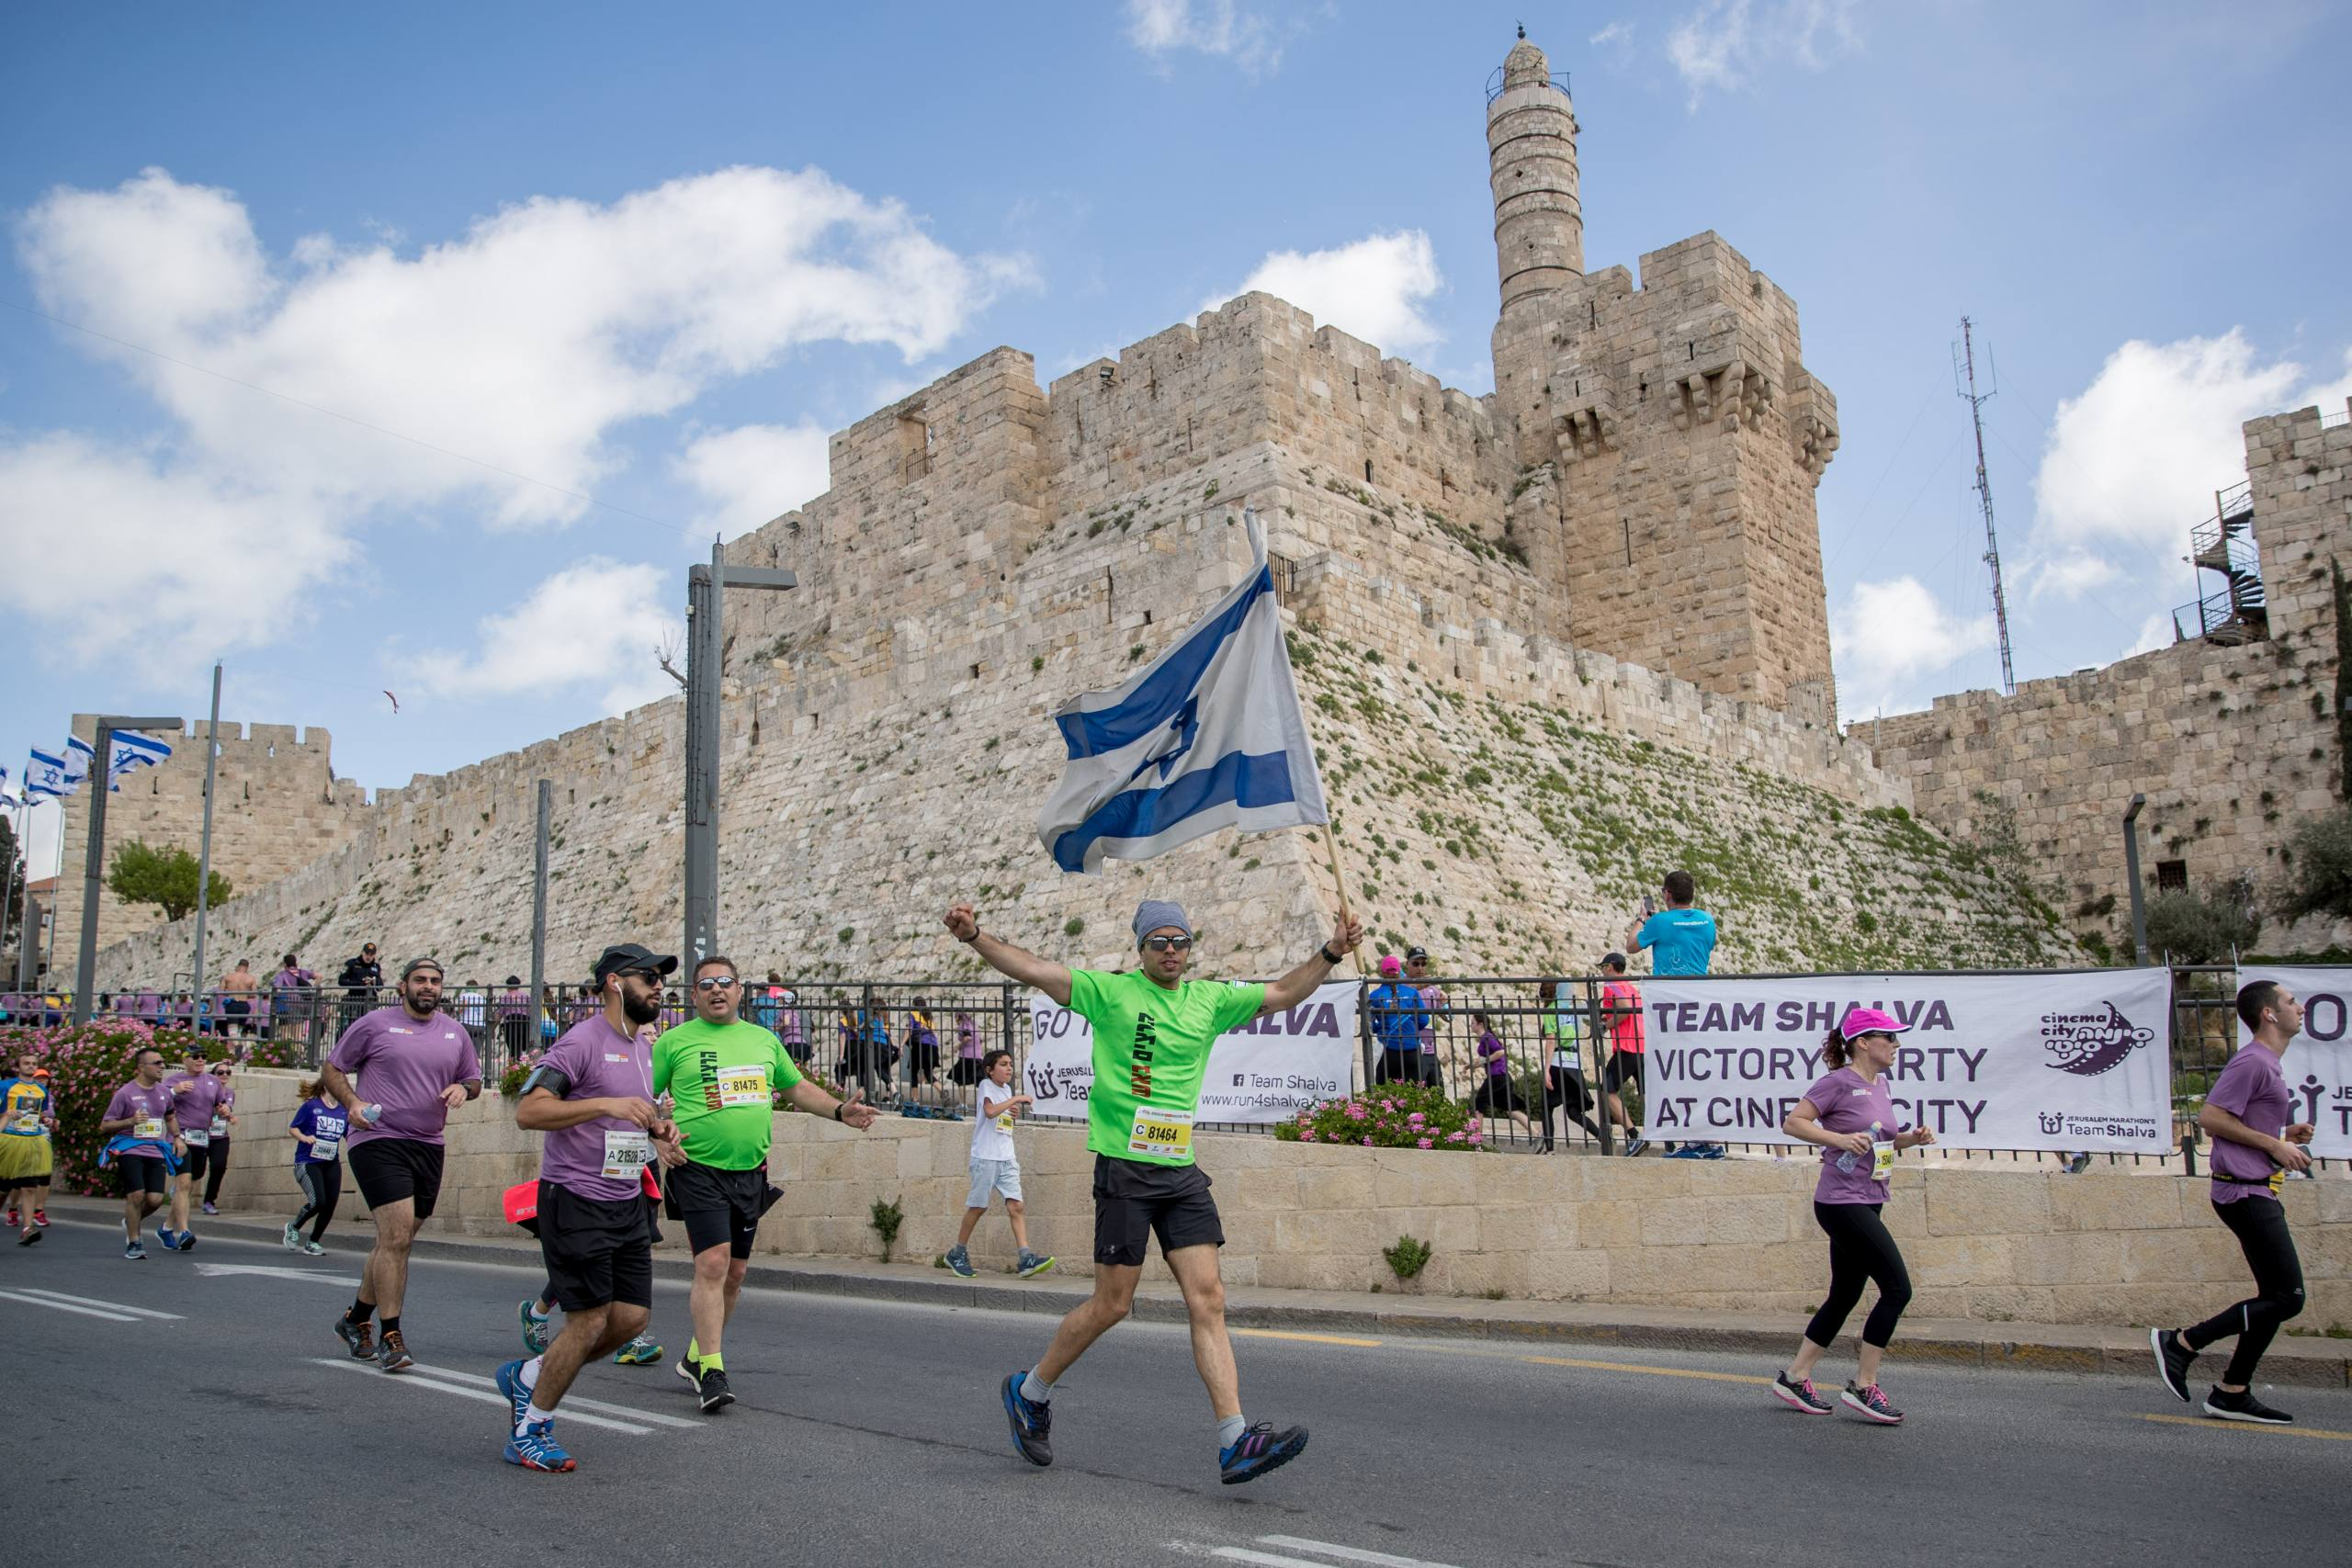 Thousands of runners take part in the 2018 international Jerusalem Marathon near the Tower of David outside Jerusalem Old City on March 9, 2018. Photo by Yonatan Sindel/Flash90 *** Local Caption *** ספורט ריצה מרתון ירושלים רצים 2018 מגדל דוד